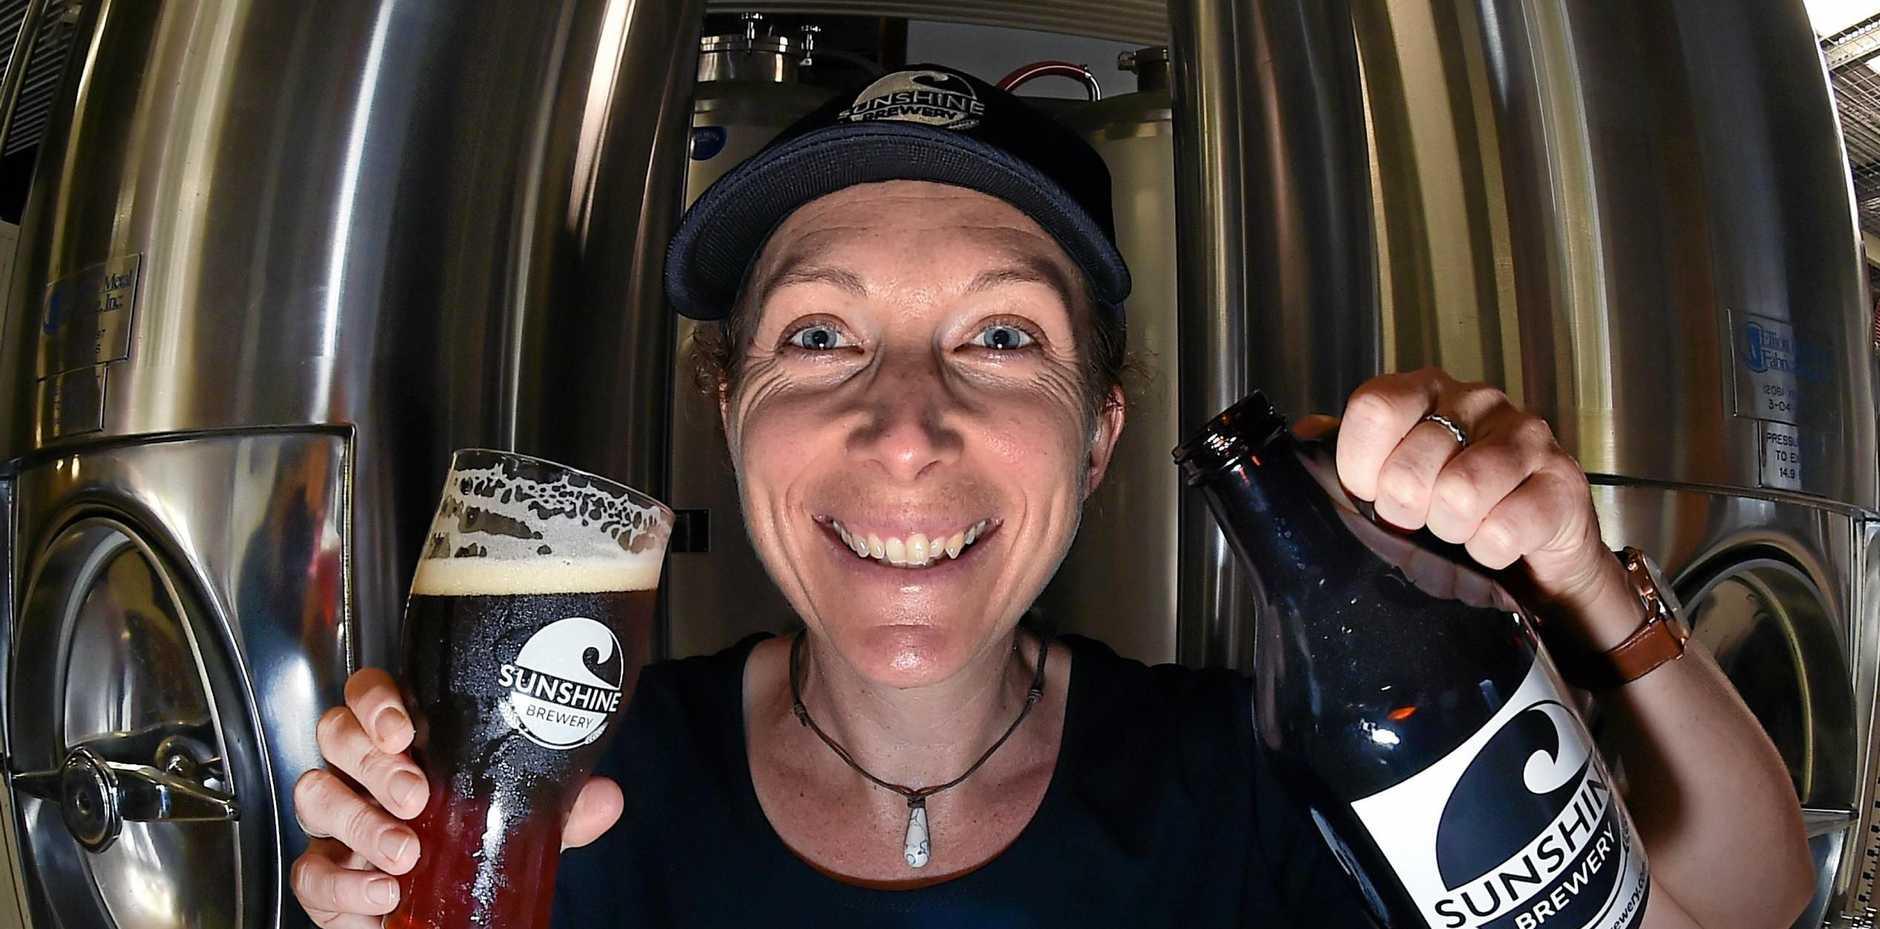 ICE COLD: Beer advocate Leah Hayes, from Sunshine Brewery, getting ready for a big weekend at the Craft Beer and Cider Festival.